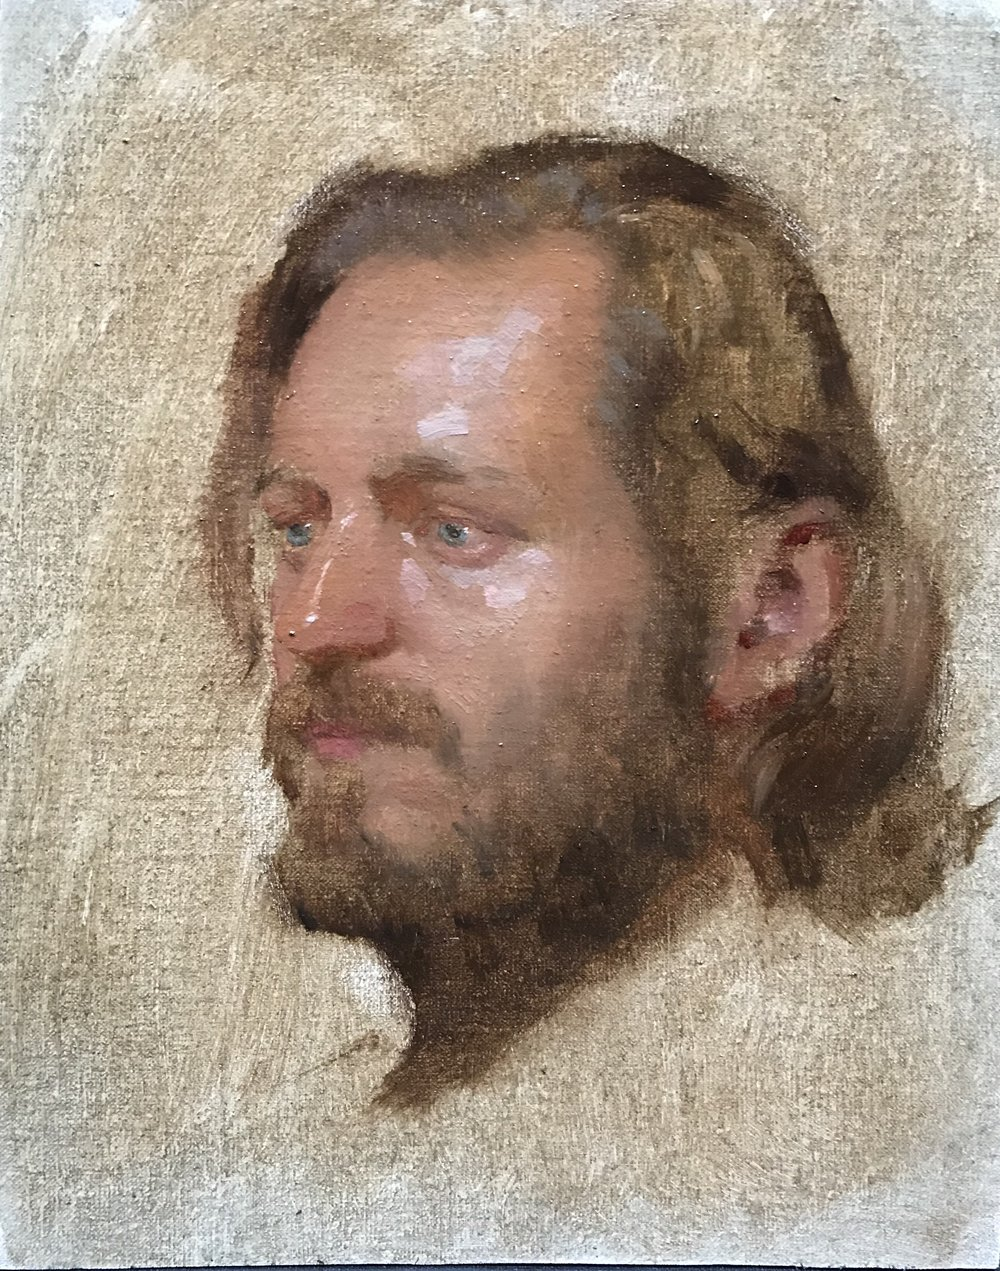 Sketch of a young man  by Kevin Müller Cisneros, 2018 8 x 10 in, oil on canvas